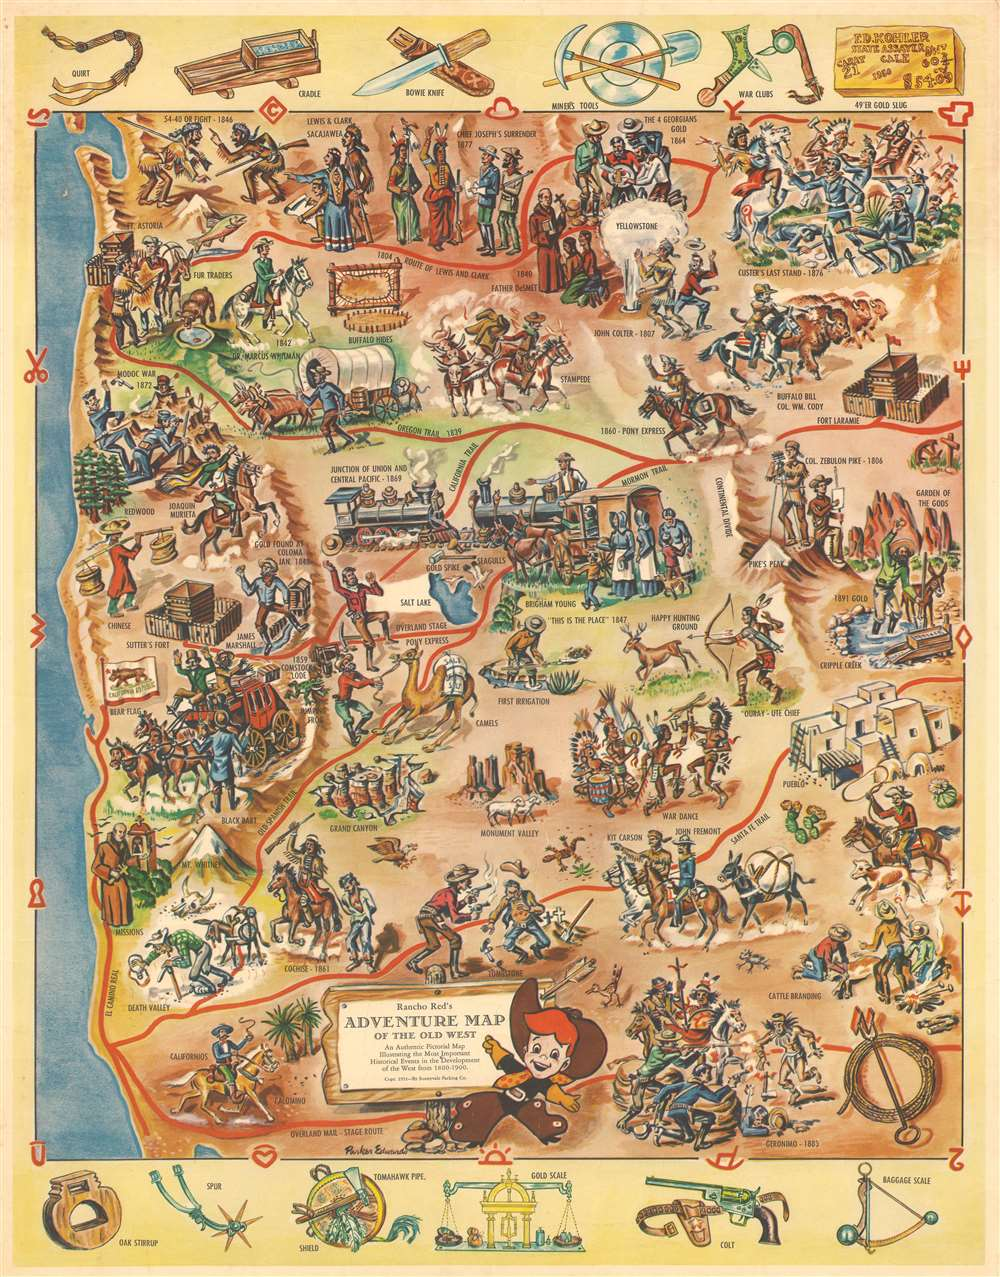 Rancho Red's Adventure Map of the Old West. An Authentic Pictorial Map Illustrating the Most Important Historical Events in the Development of the West from 1800 - 1900. - Main View